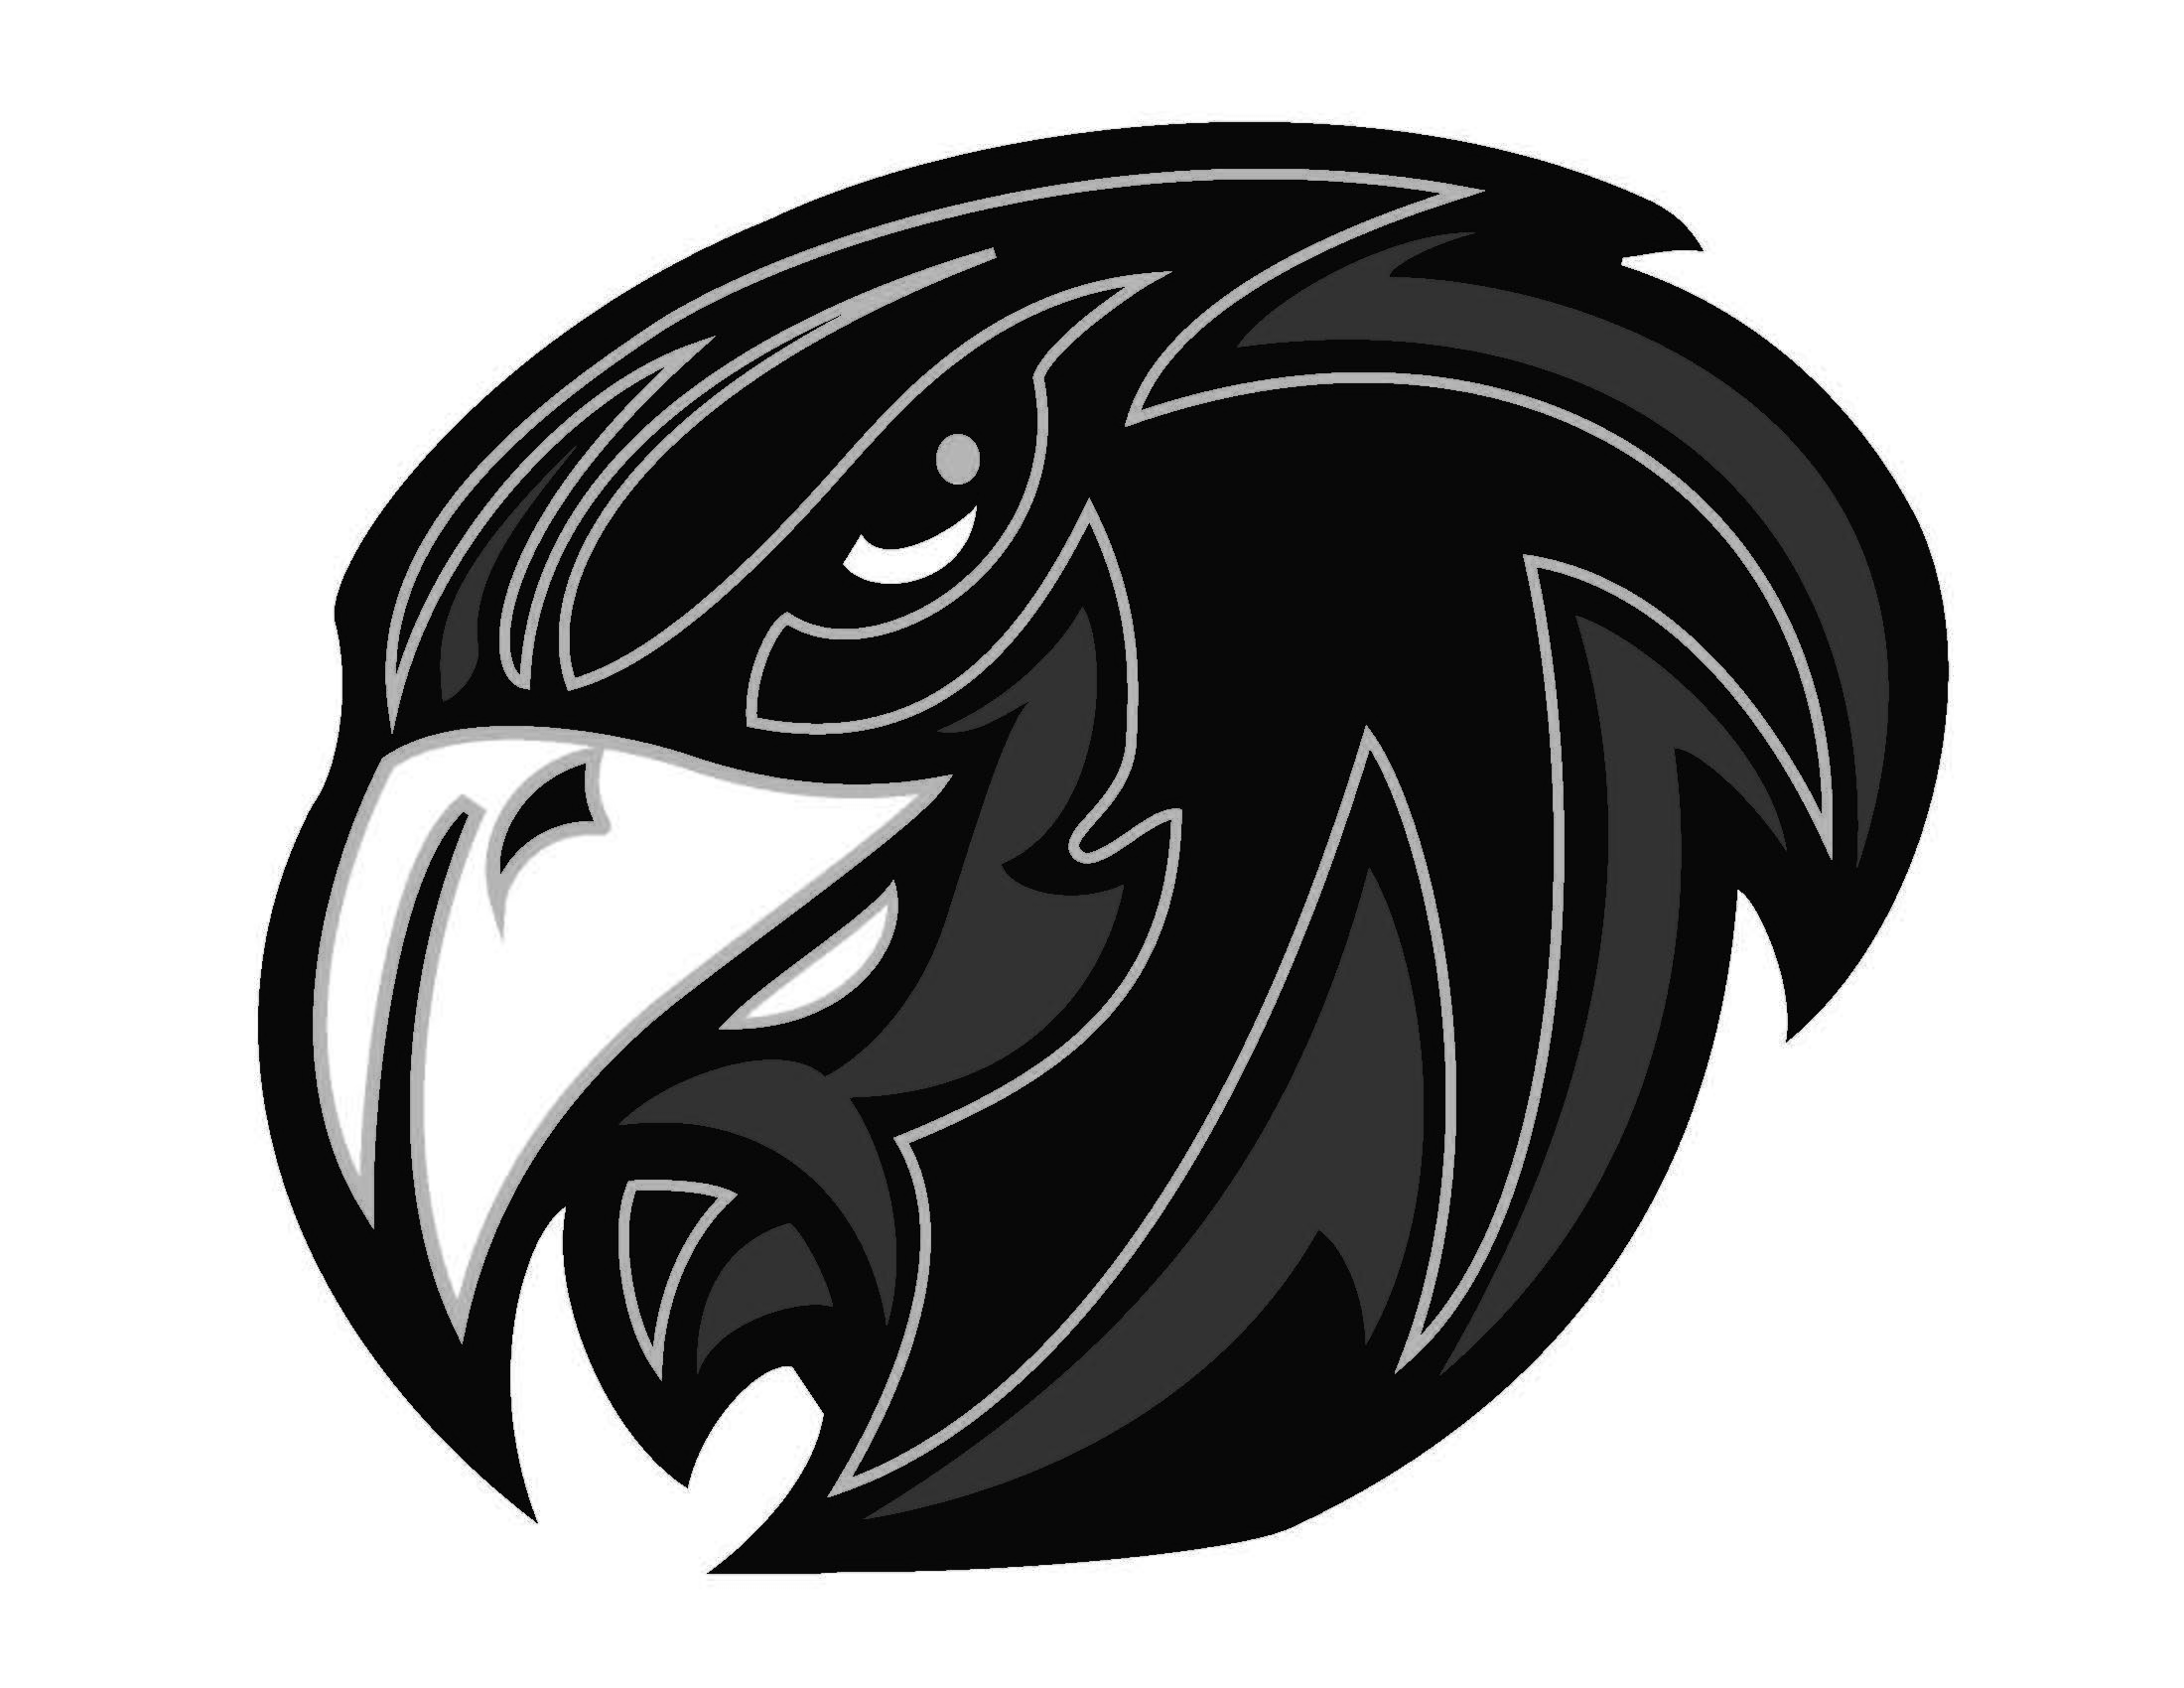 Bclipart free images i. Hawk clipart hawk head png library library